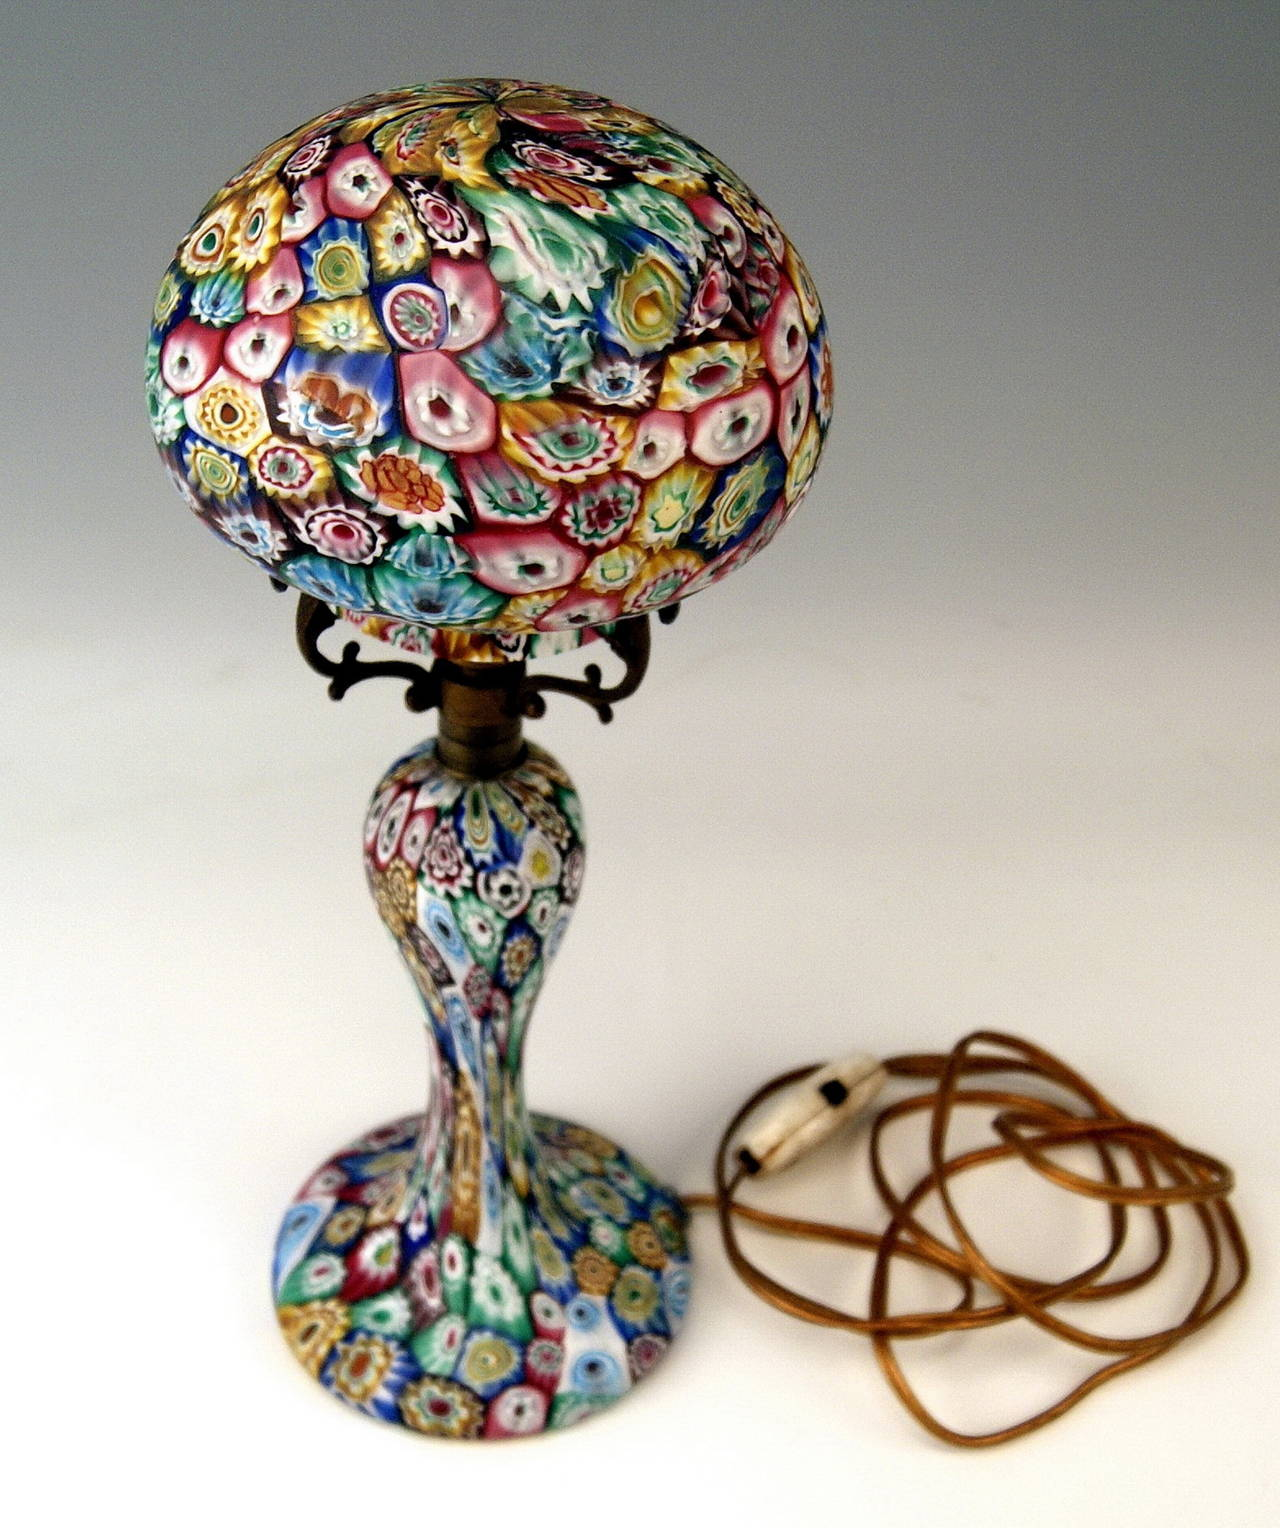 Murano Vintage Glass Lamp Millefiori Fratelli Toso Circa 1920 1925 At 1stdibs